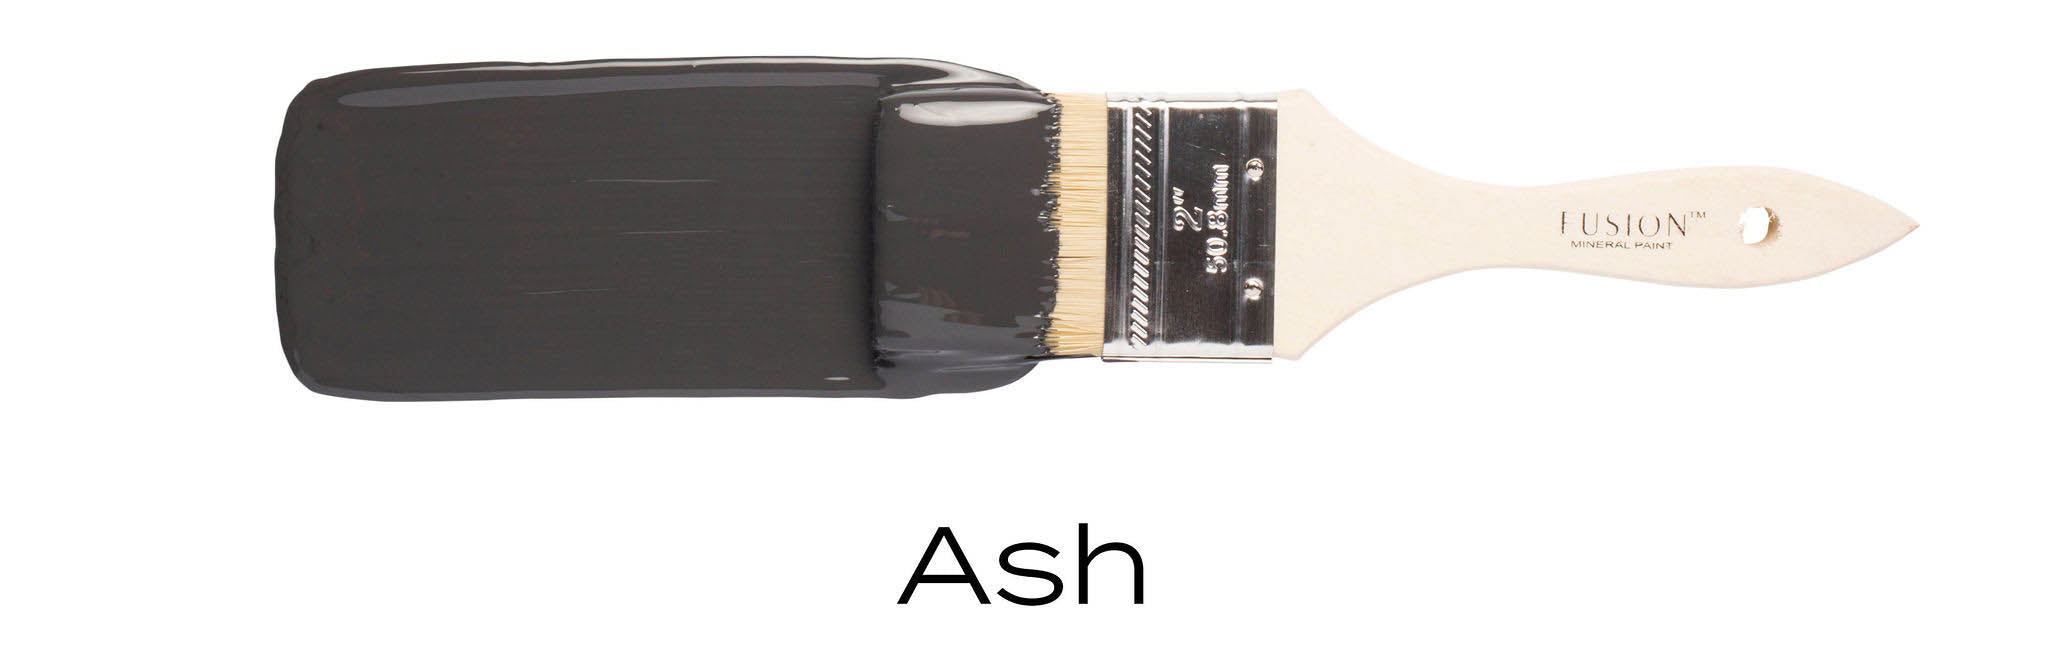 Ash Fusion Mineral Paint Furniture Paint Colour Example, No Prep or top coat needed, UK Stockist